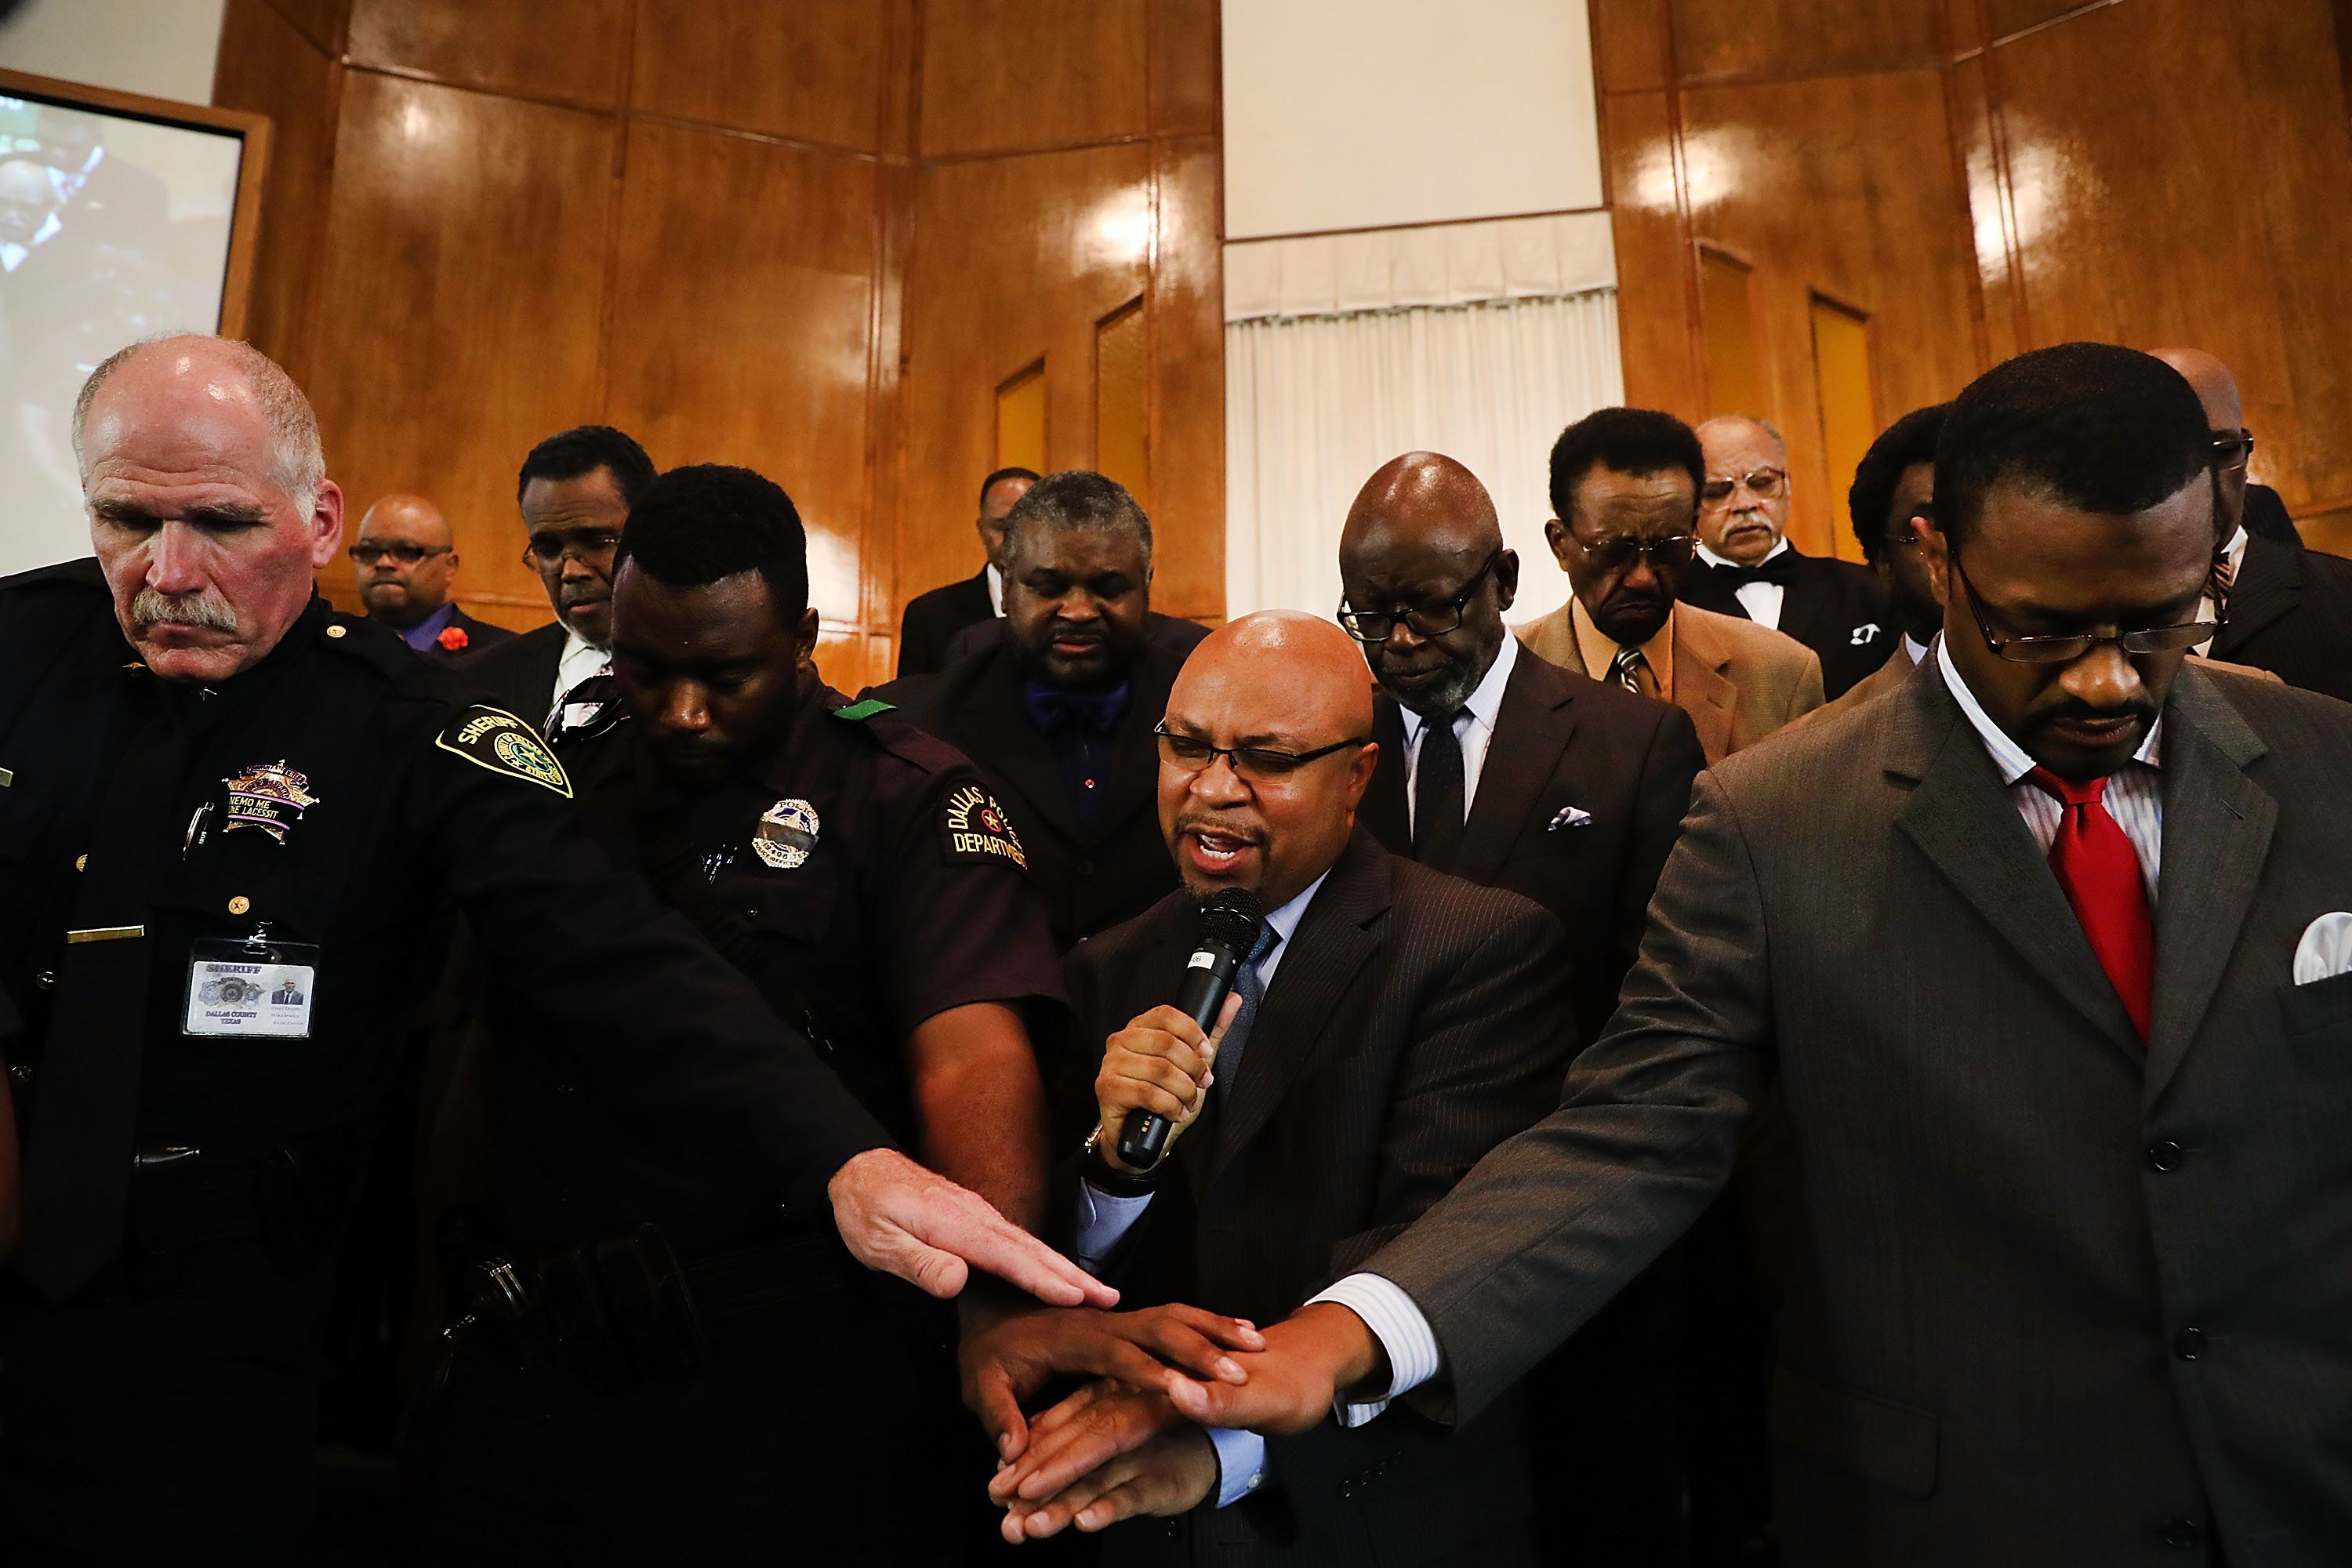 DALLAS, TX - JULY 10: Police officers from area departments in and around Dallas pray with Minister Carl Sherman at a multicurtural prayer vigil on July 10, 2016 in Dallas, Texas. The service at the Dallas Area Interfaith Church drew over 100 worshippers including police officers. Five Dallas police officers were killed and seven others were injured last Thursday night in an evening ambush during a march against recent police involved shootings. Investigators say the suspect is 25-year-old Micah Xavier Johnson of Mesquite, Texas. This is the deadliest incident for U.S. law enforcement since September 11.  (Photo by Spencer Platt/Getty Images)